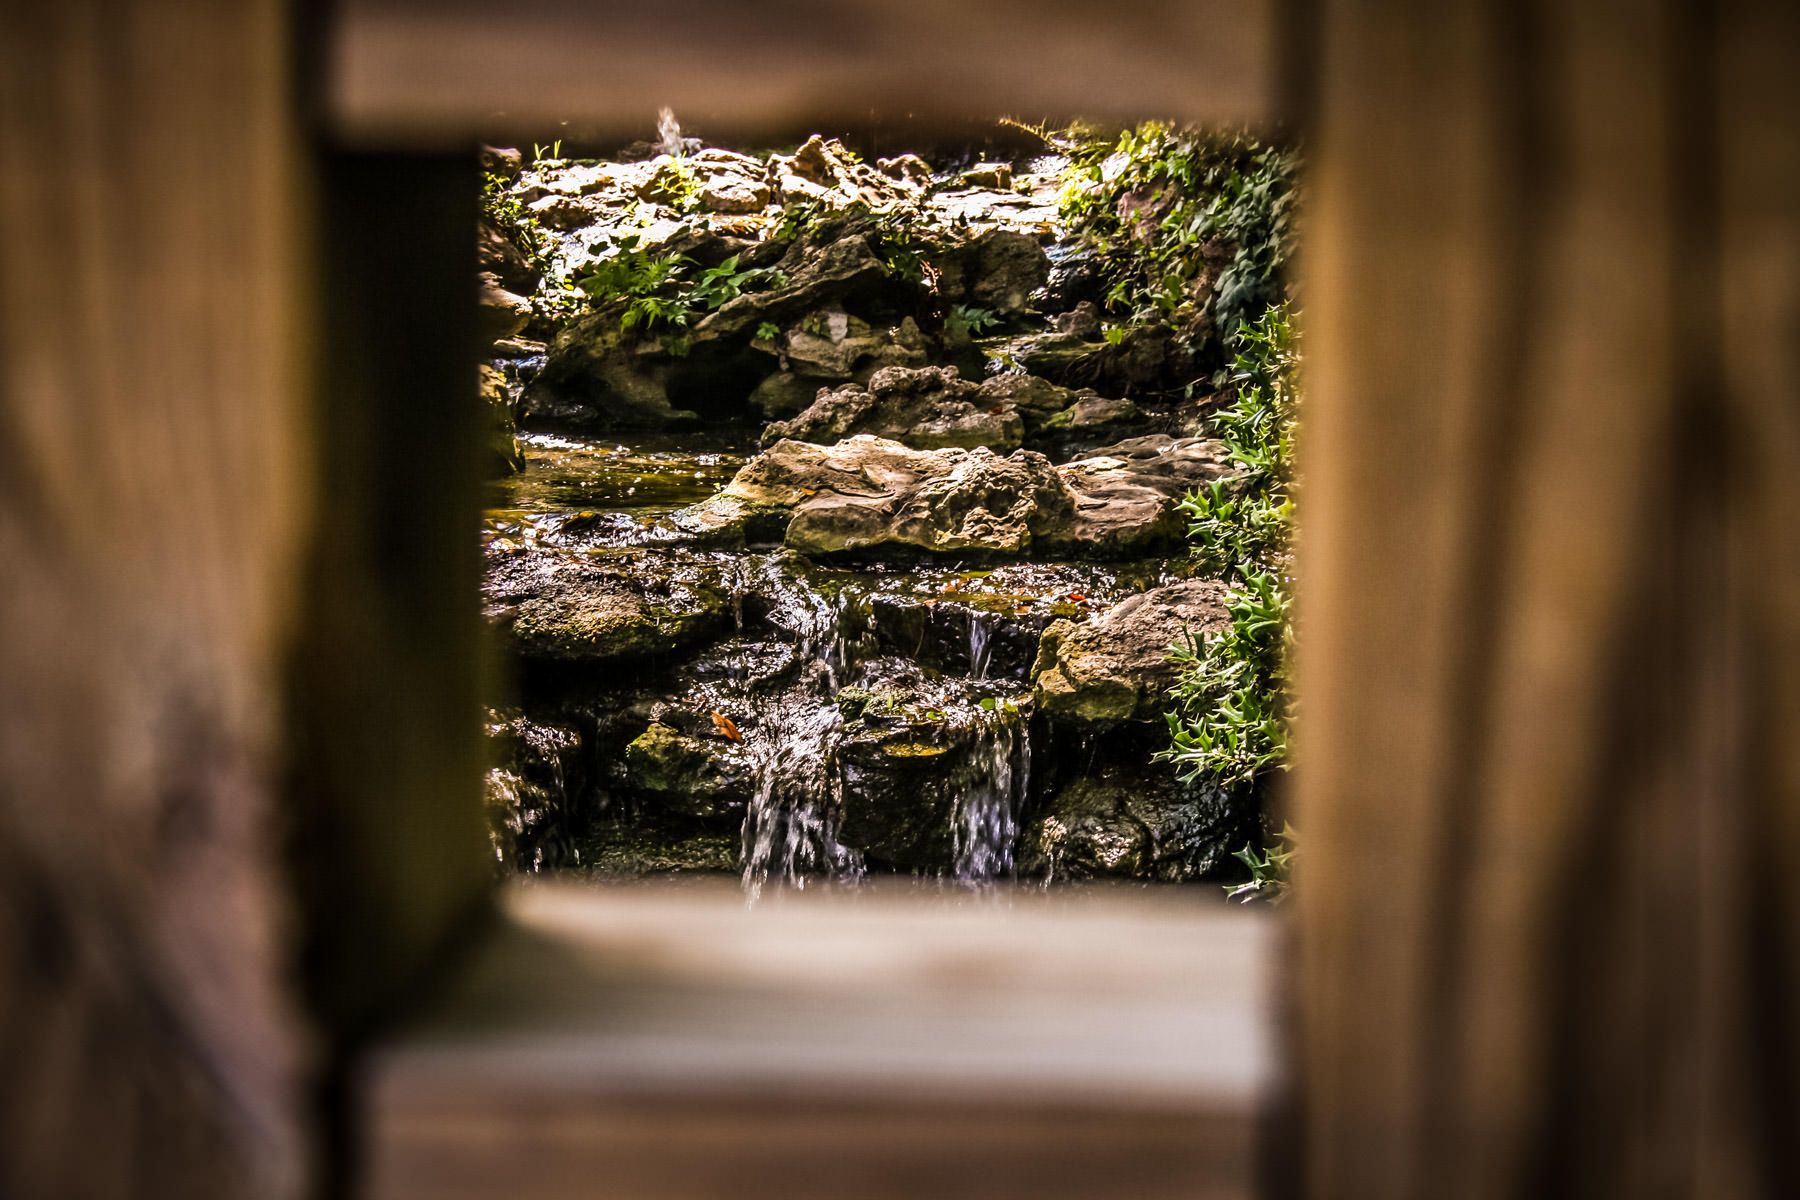 A small waterfall as seen through an opening in a wooden bridge at the Fort Worth Botanical Garden.